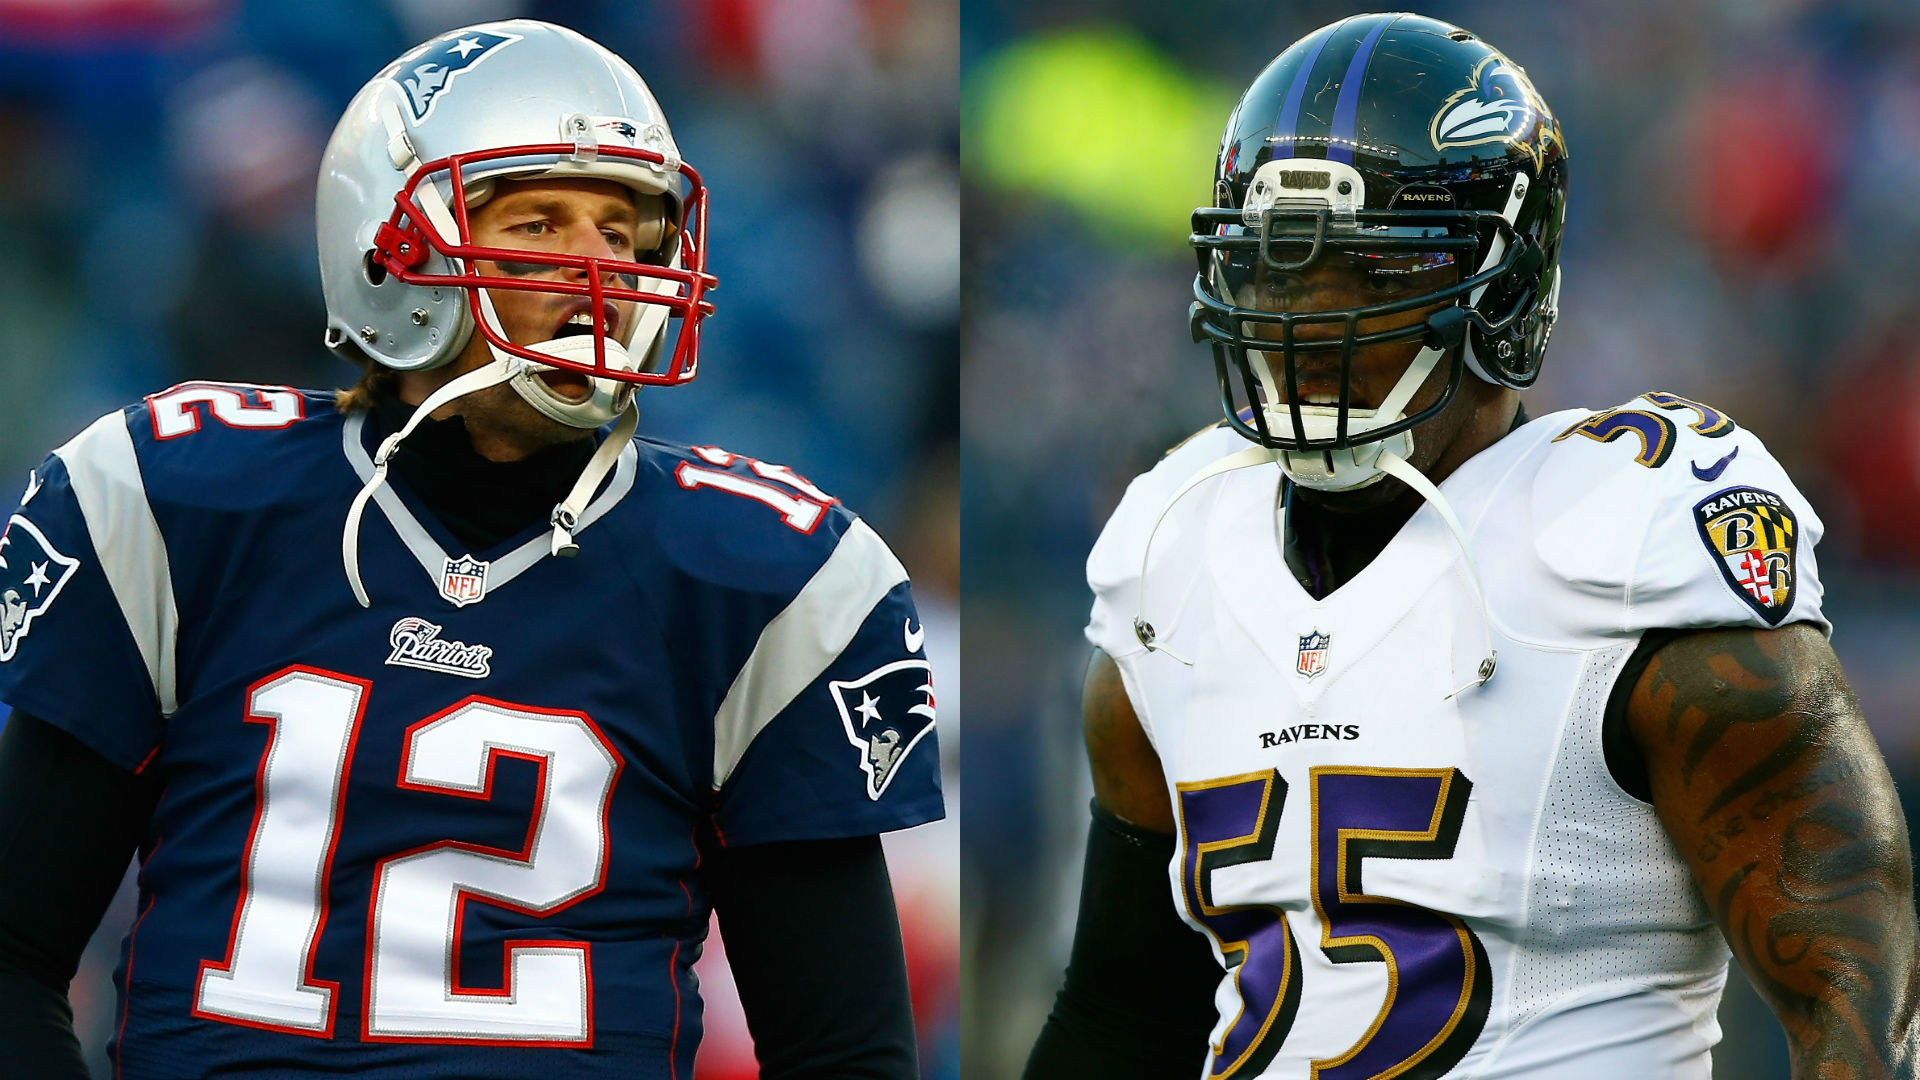 Most QB struggle throwing deep vs Ravens - but not Tom Brady